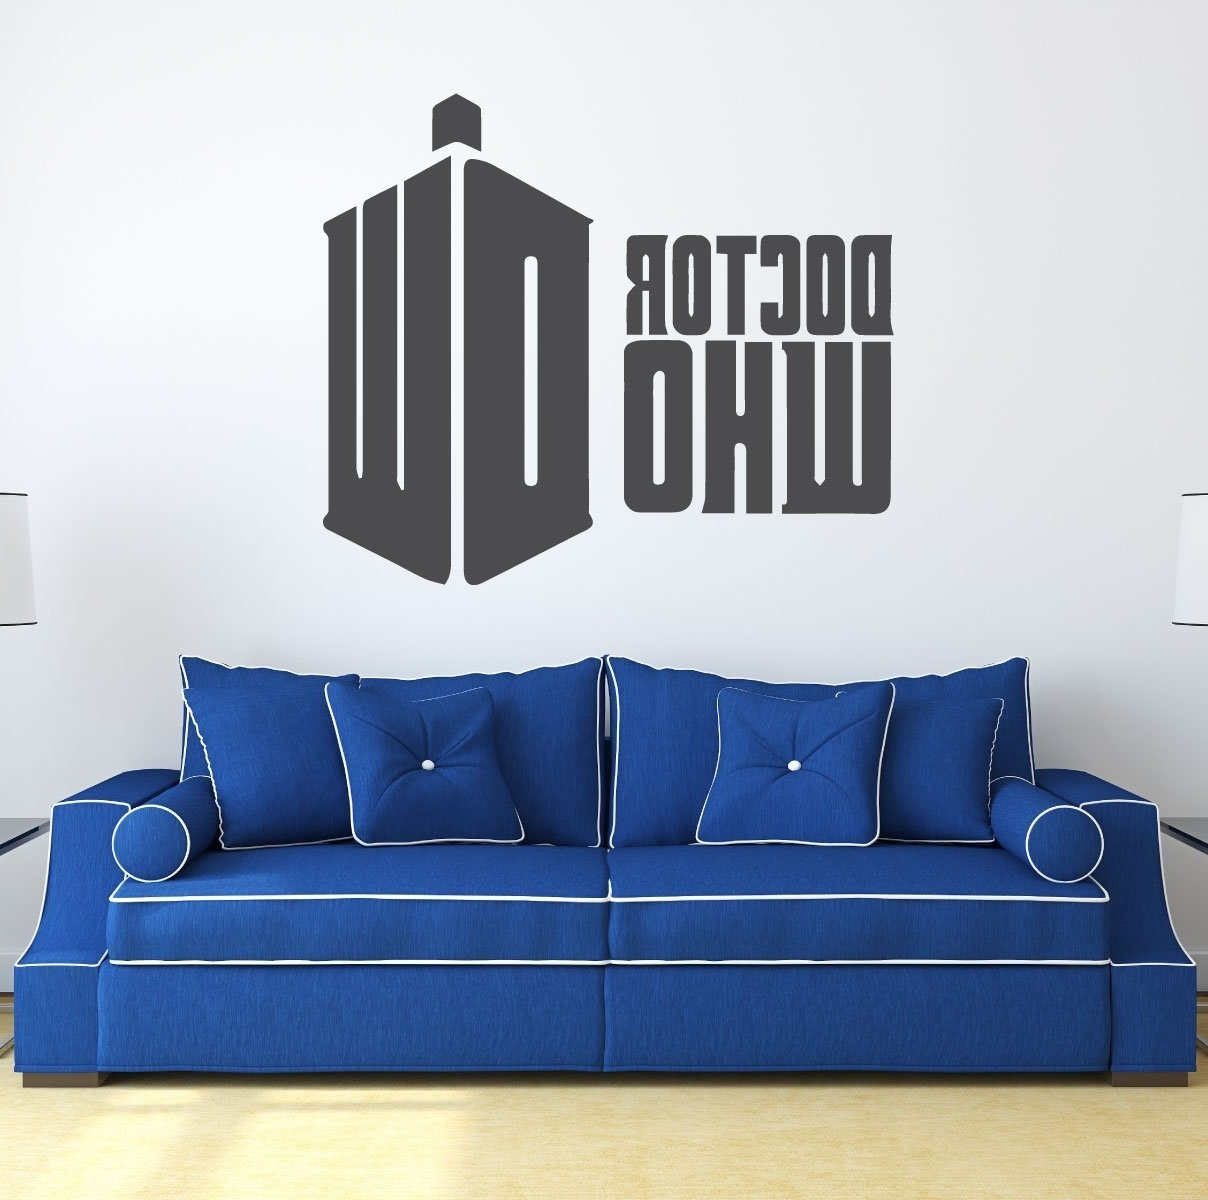 Best And Newest Doctor Who Wall Art Intended For Doctor Who Wall Art – Doctor Who Dw – Whovian Gifts (View 12 of 15)